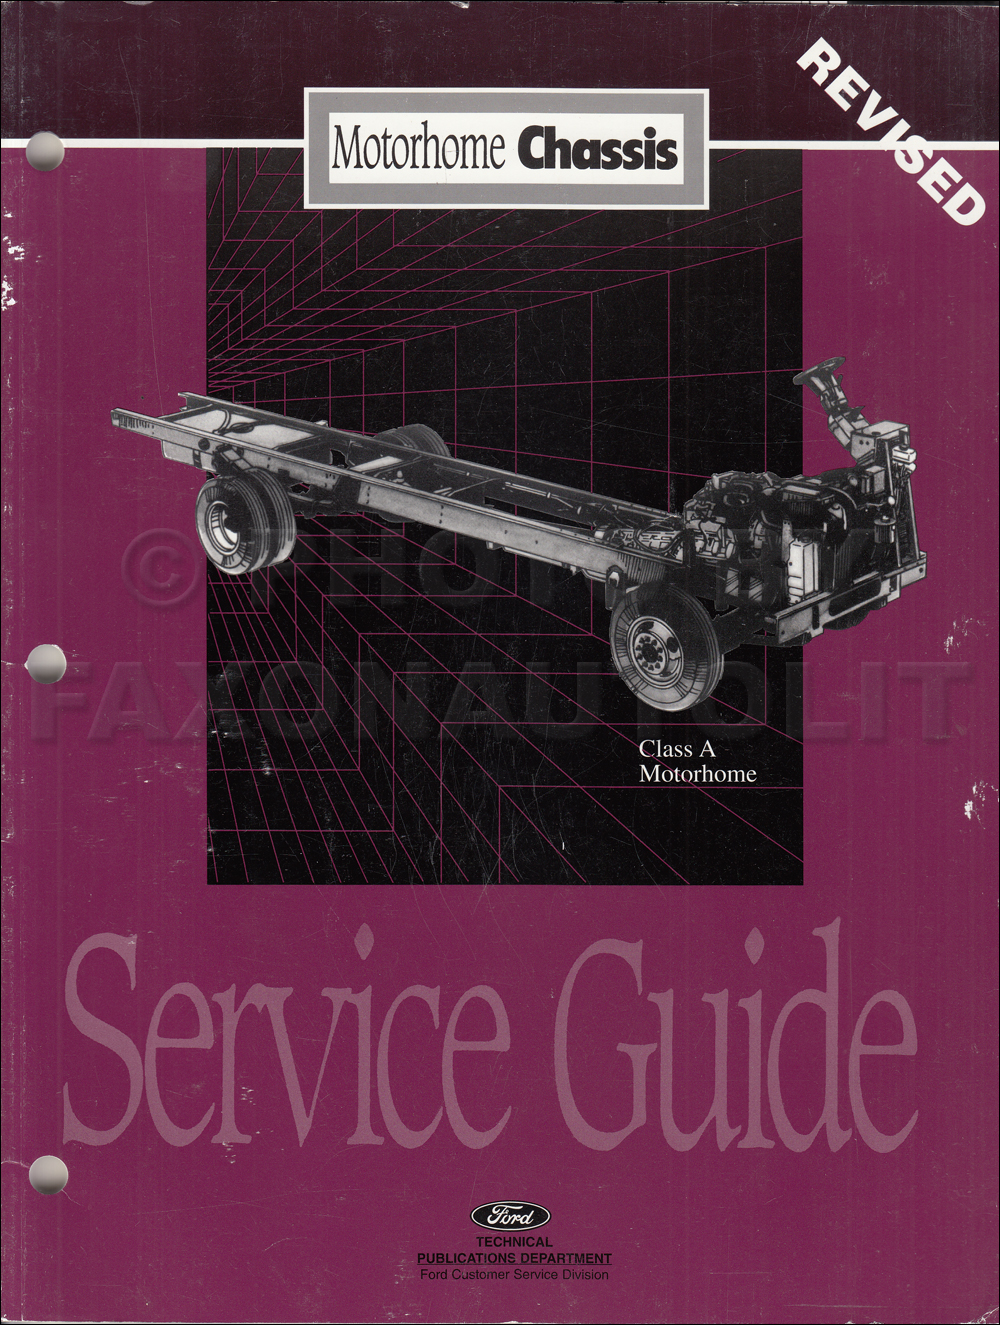 1996-1997 Ford Motorhome Chassis Service Guide Original REVISED